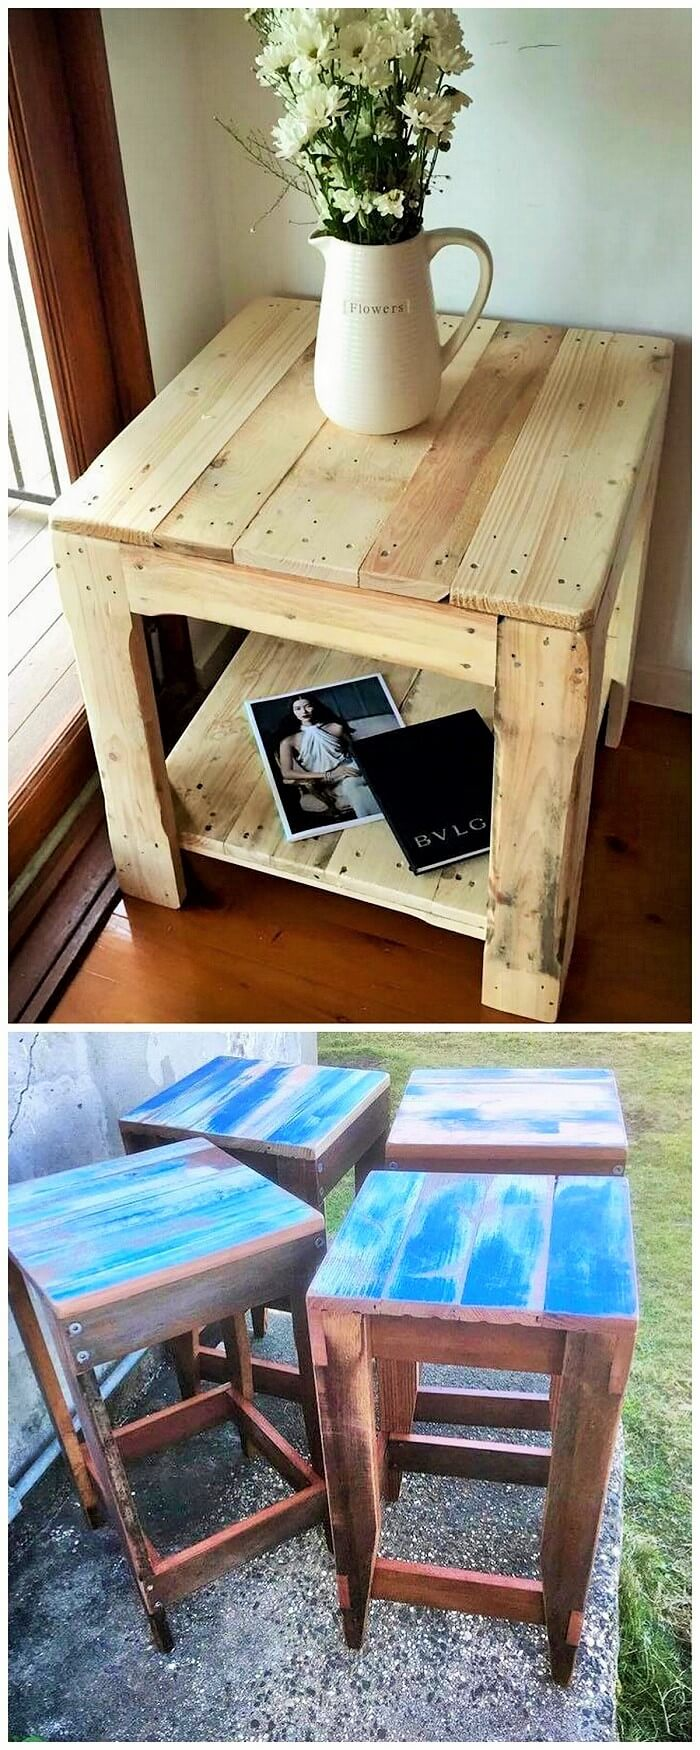 Wooden Pallets Small Table Ideas (2)